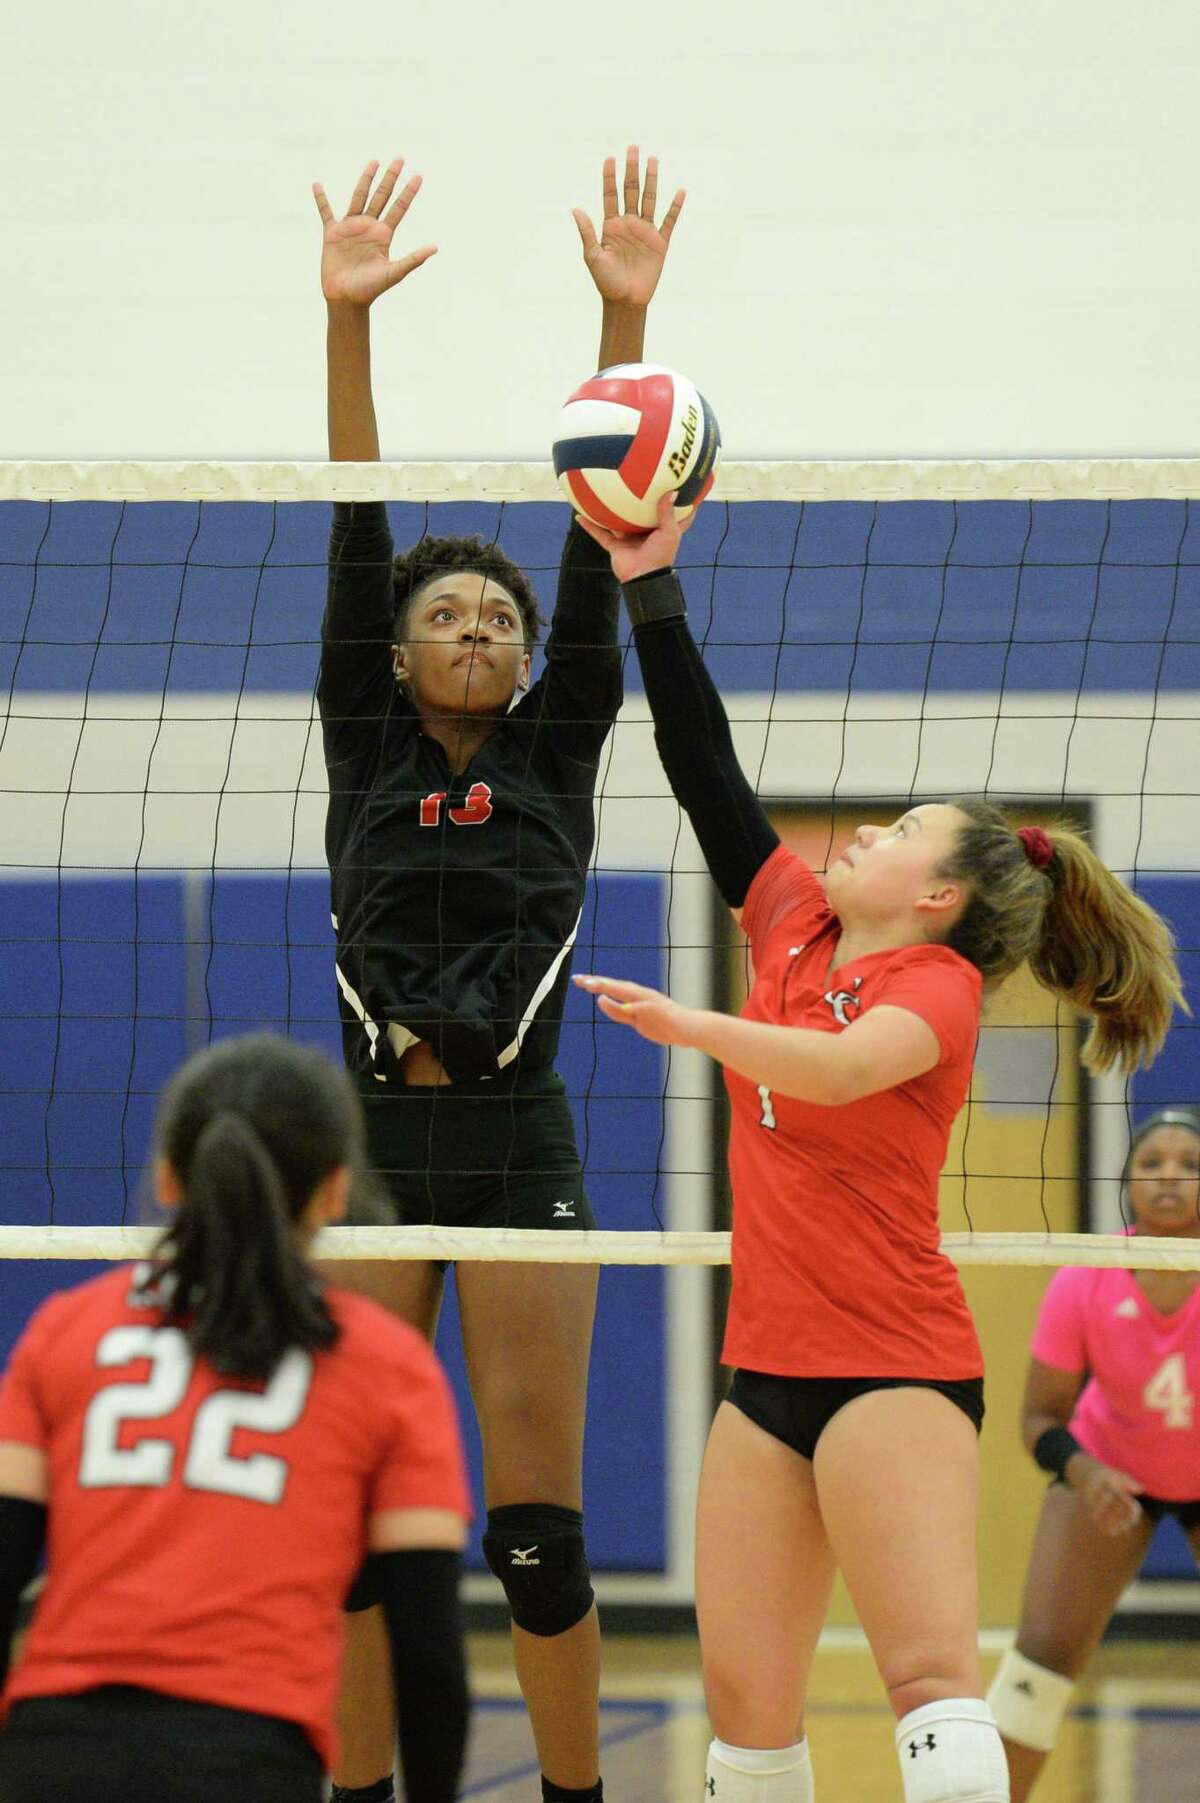 Gabrielle Johnson (13) of Austin attempts to block a shot earlier this season. The Bulldogs are returning to the playoffs.